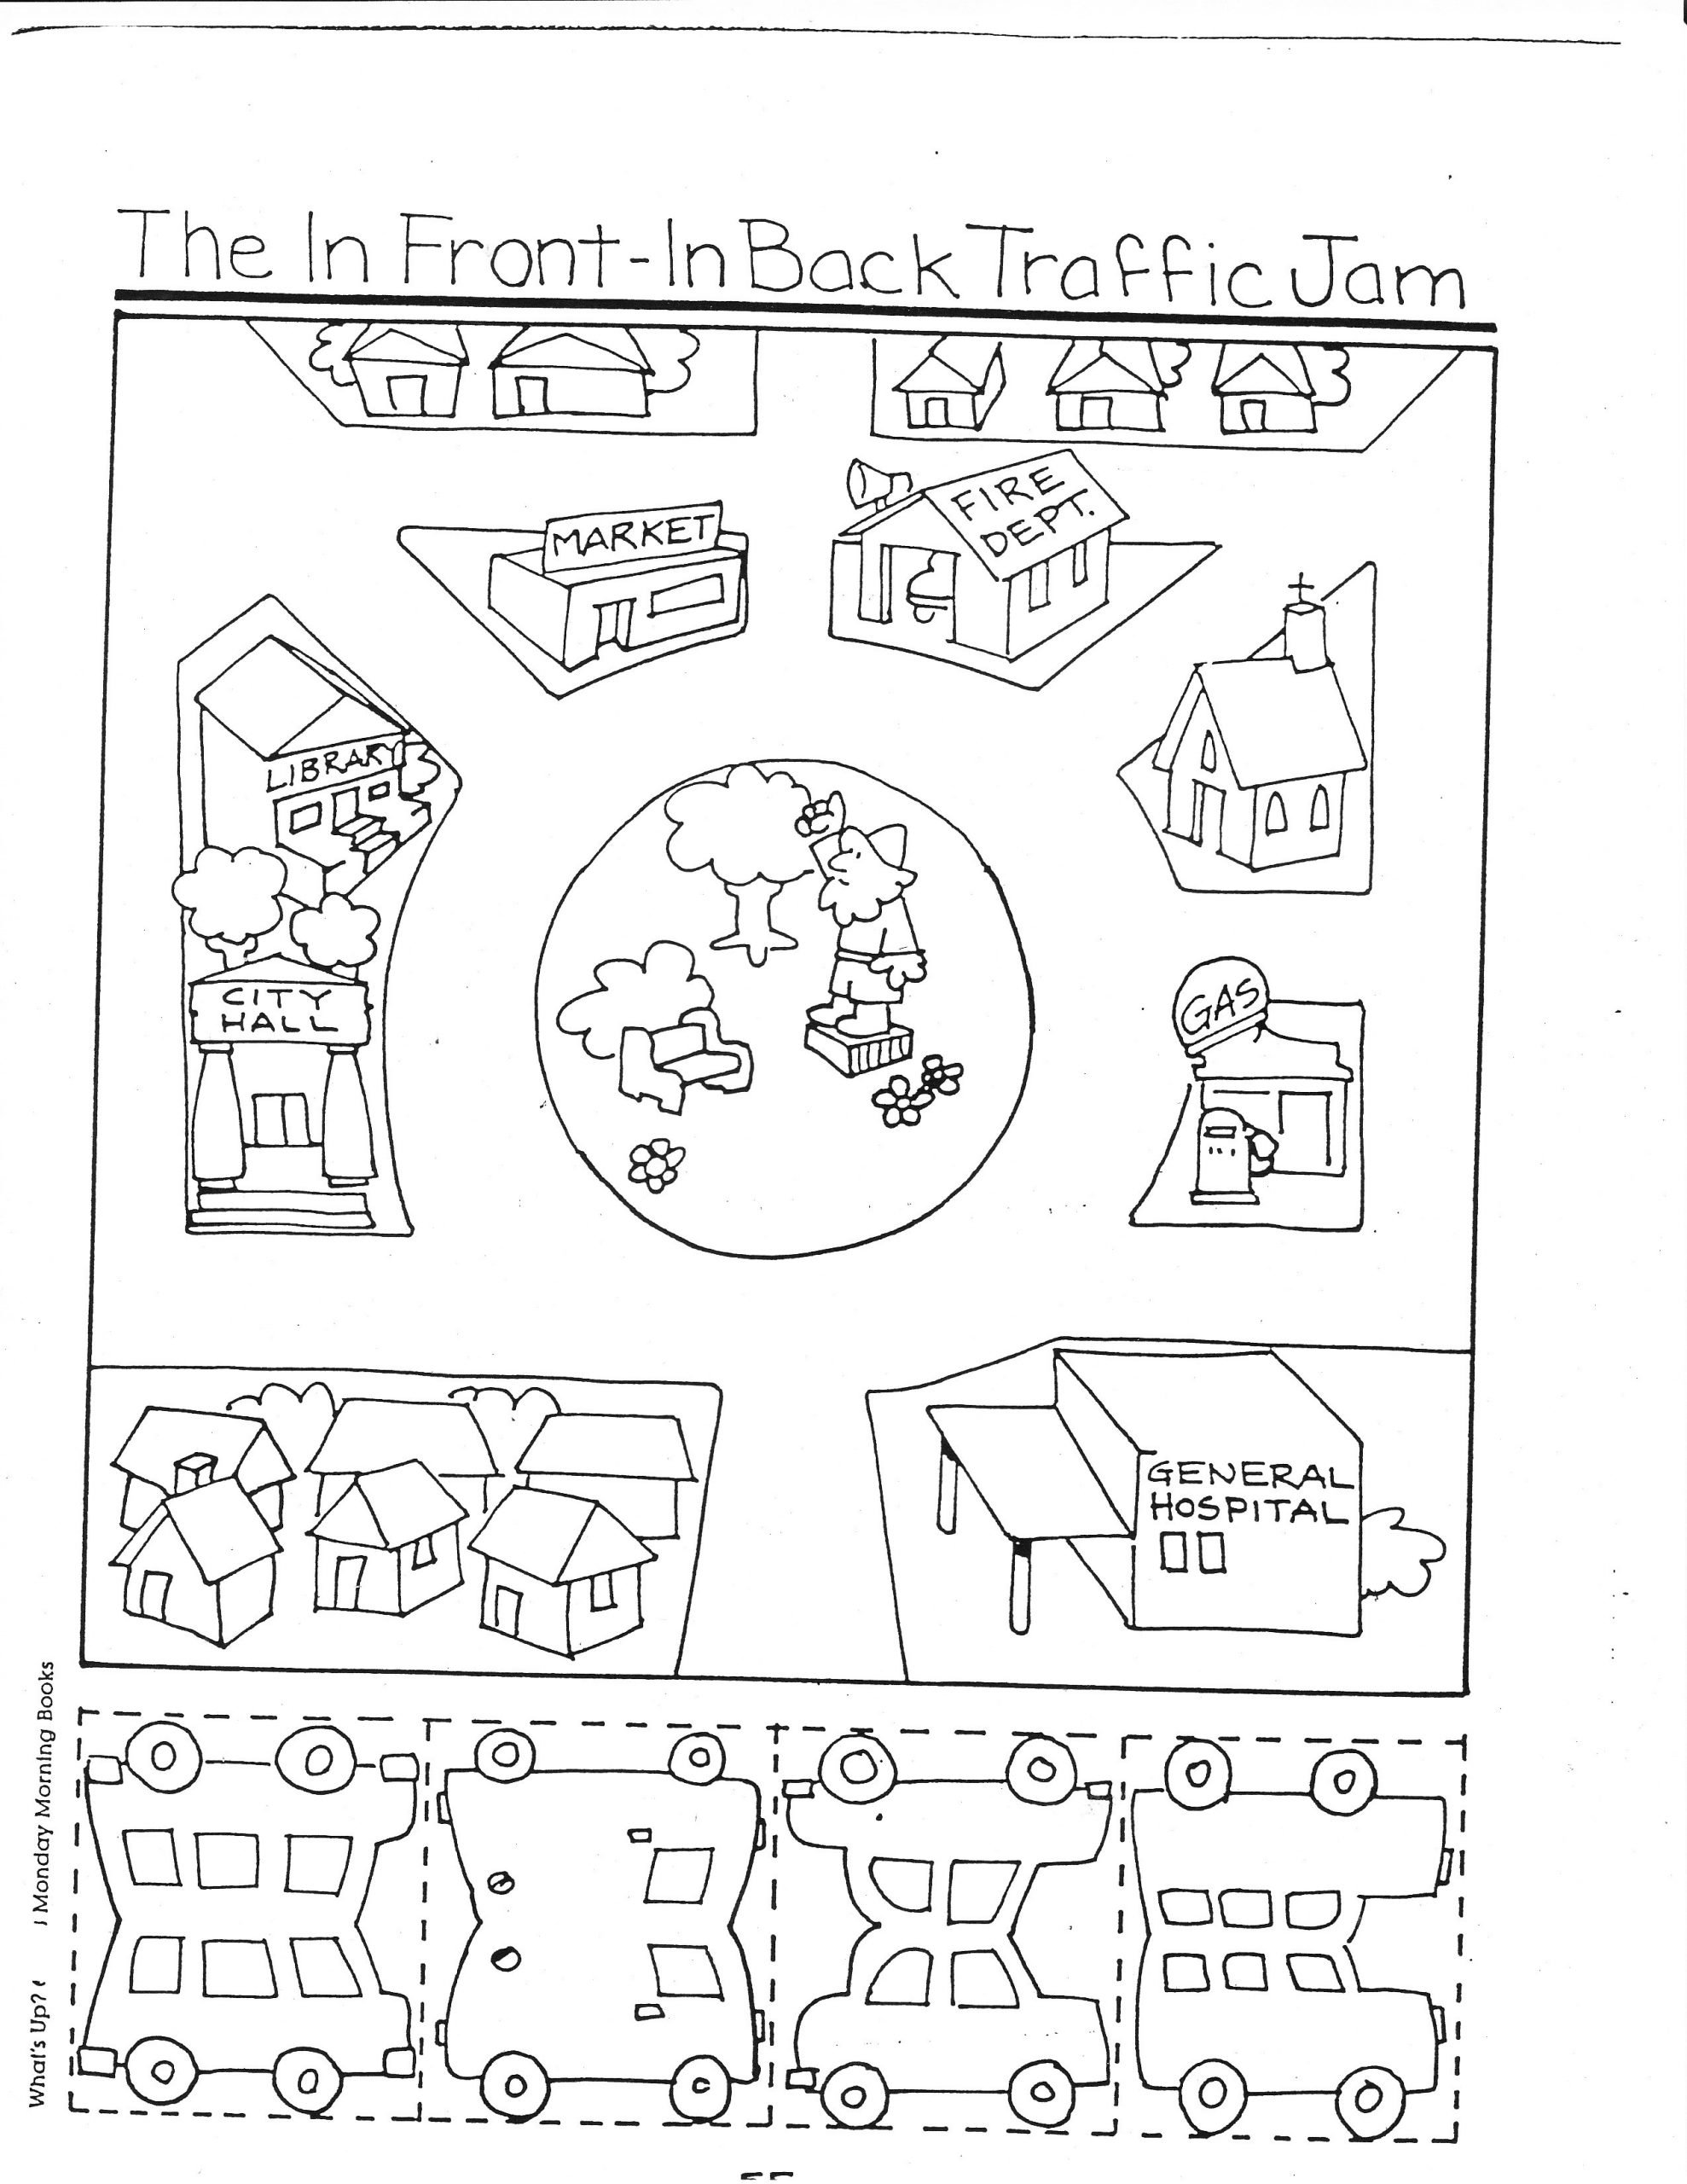 20 Morning Afternoon Evening Worksheet Kindergarten